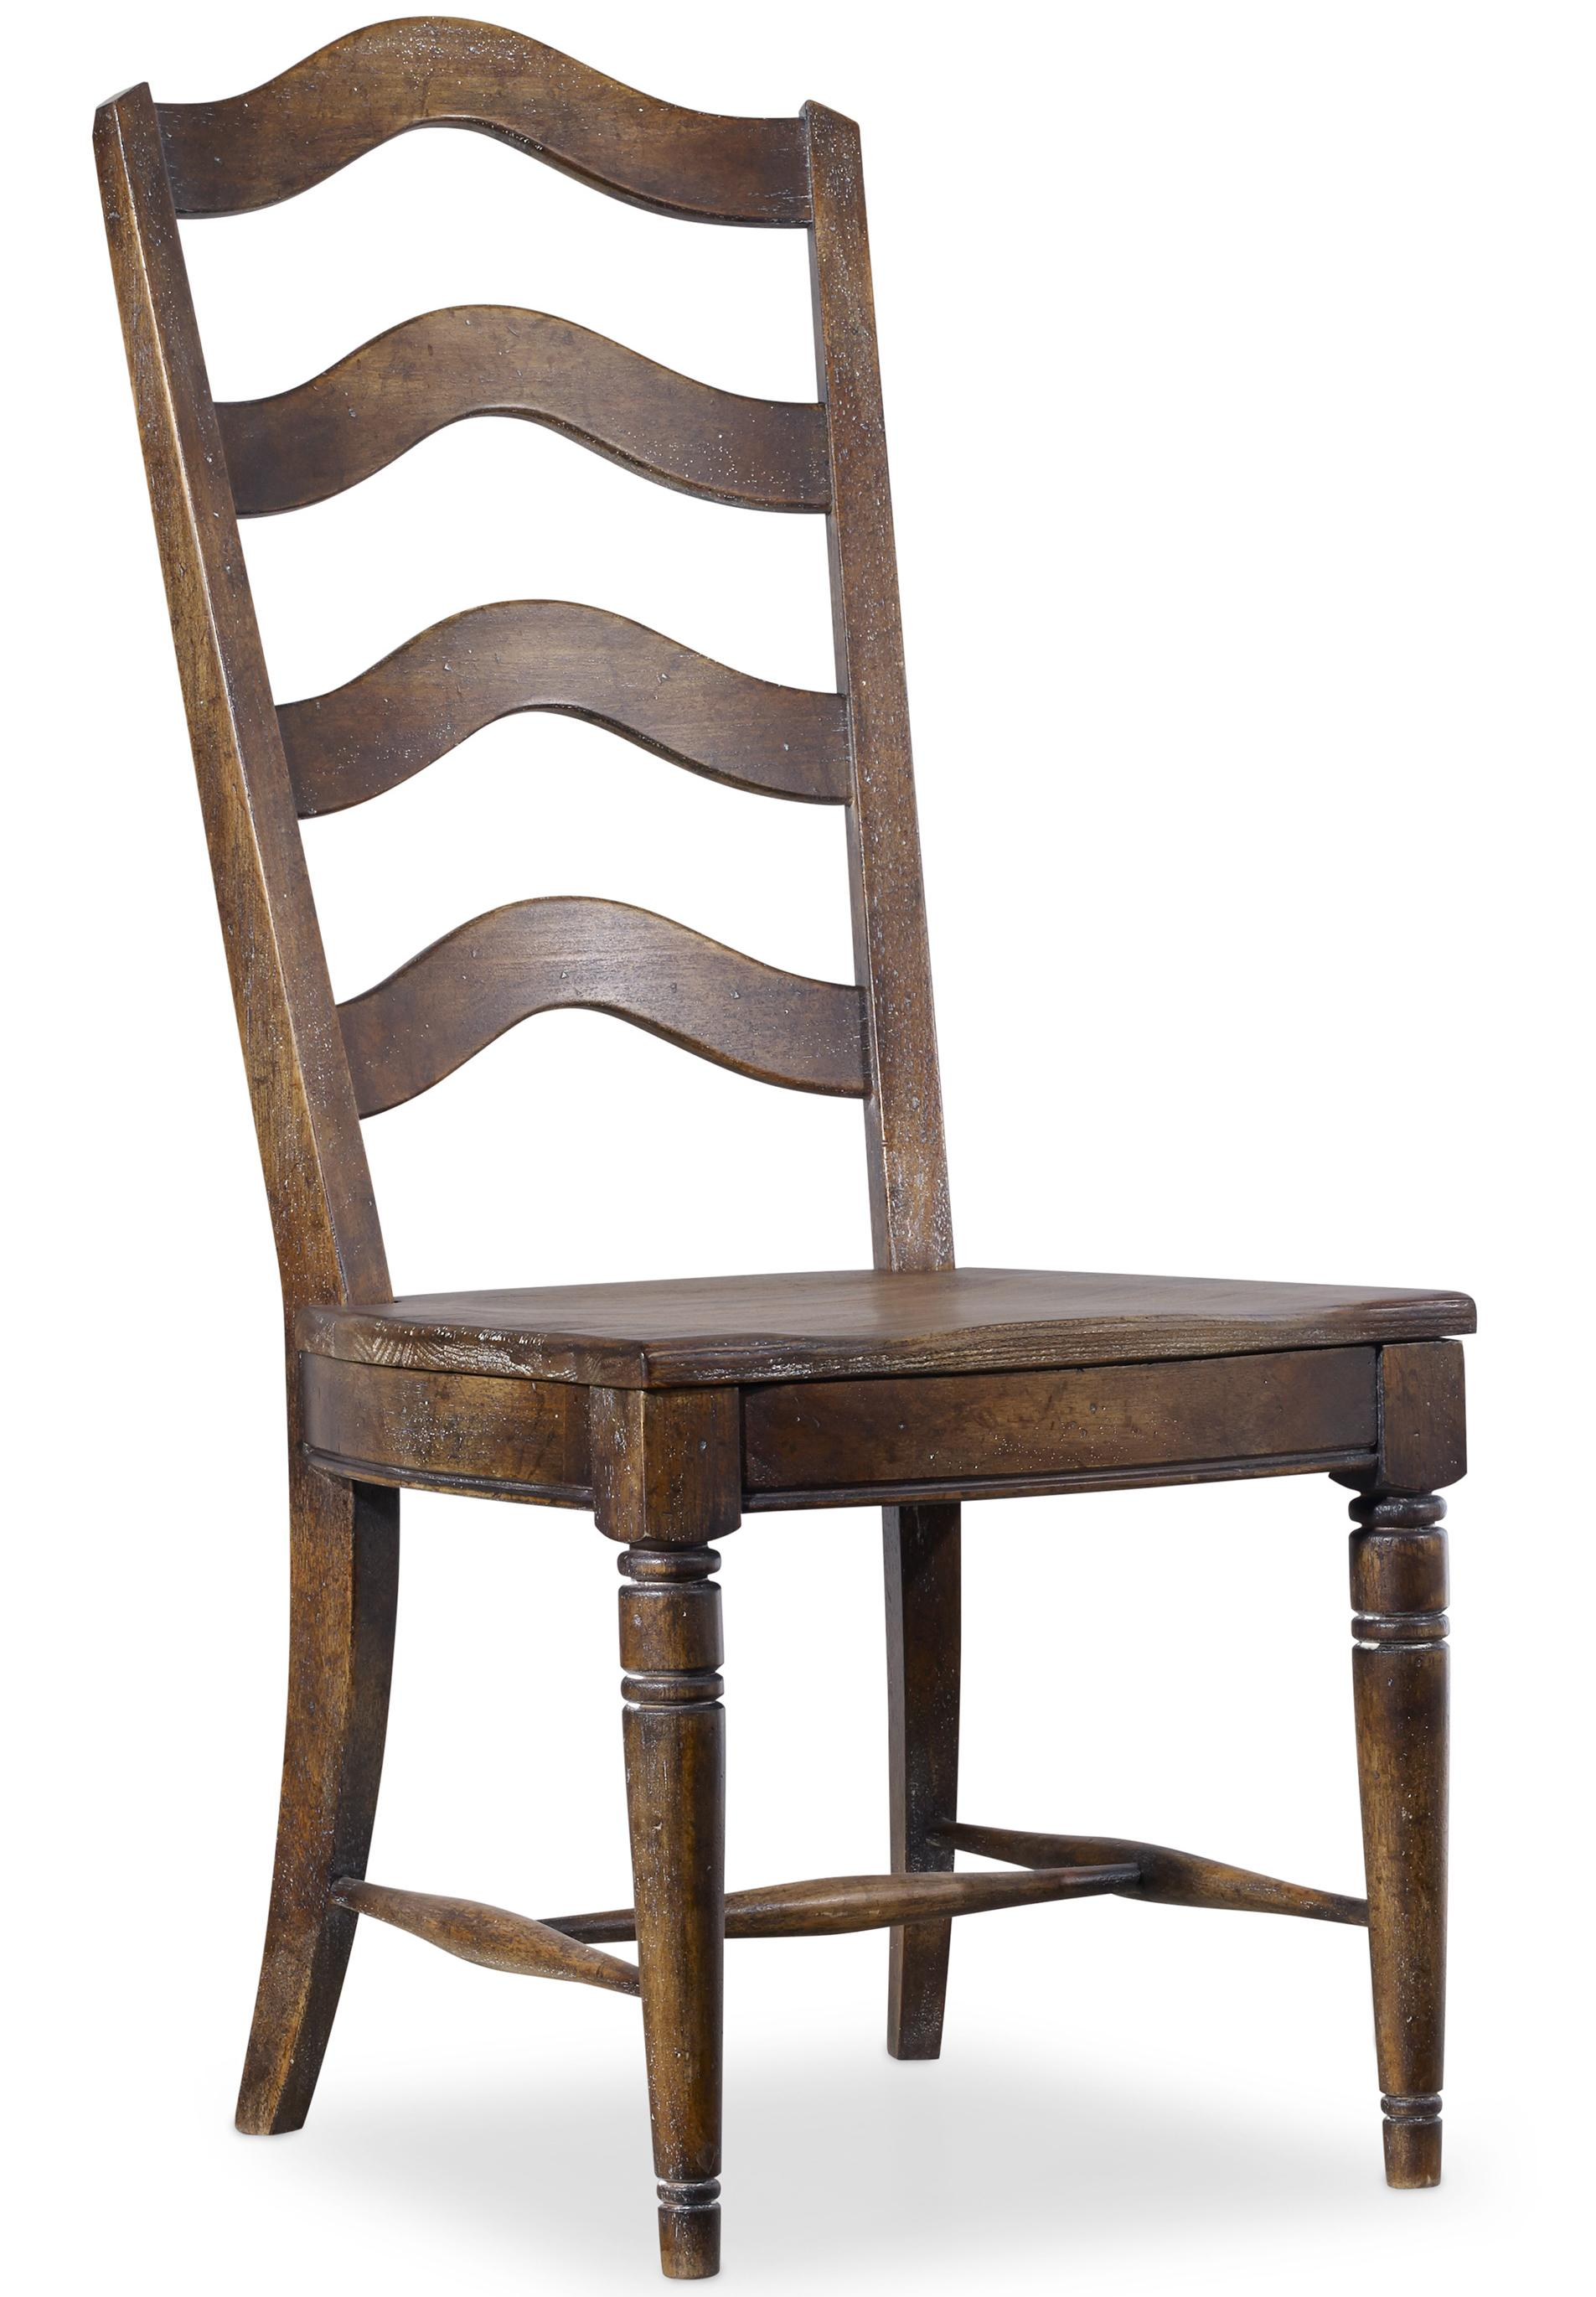 Hooker Furniture Willow Bend Ladderback Side Chair - Item Number: 5343-75310